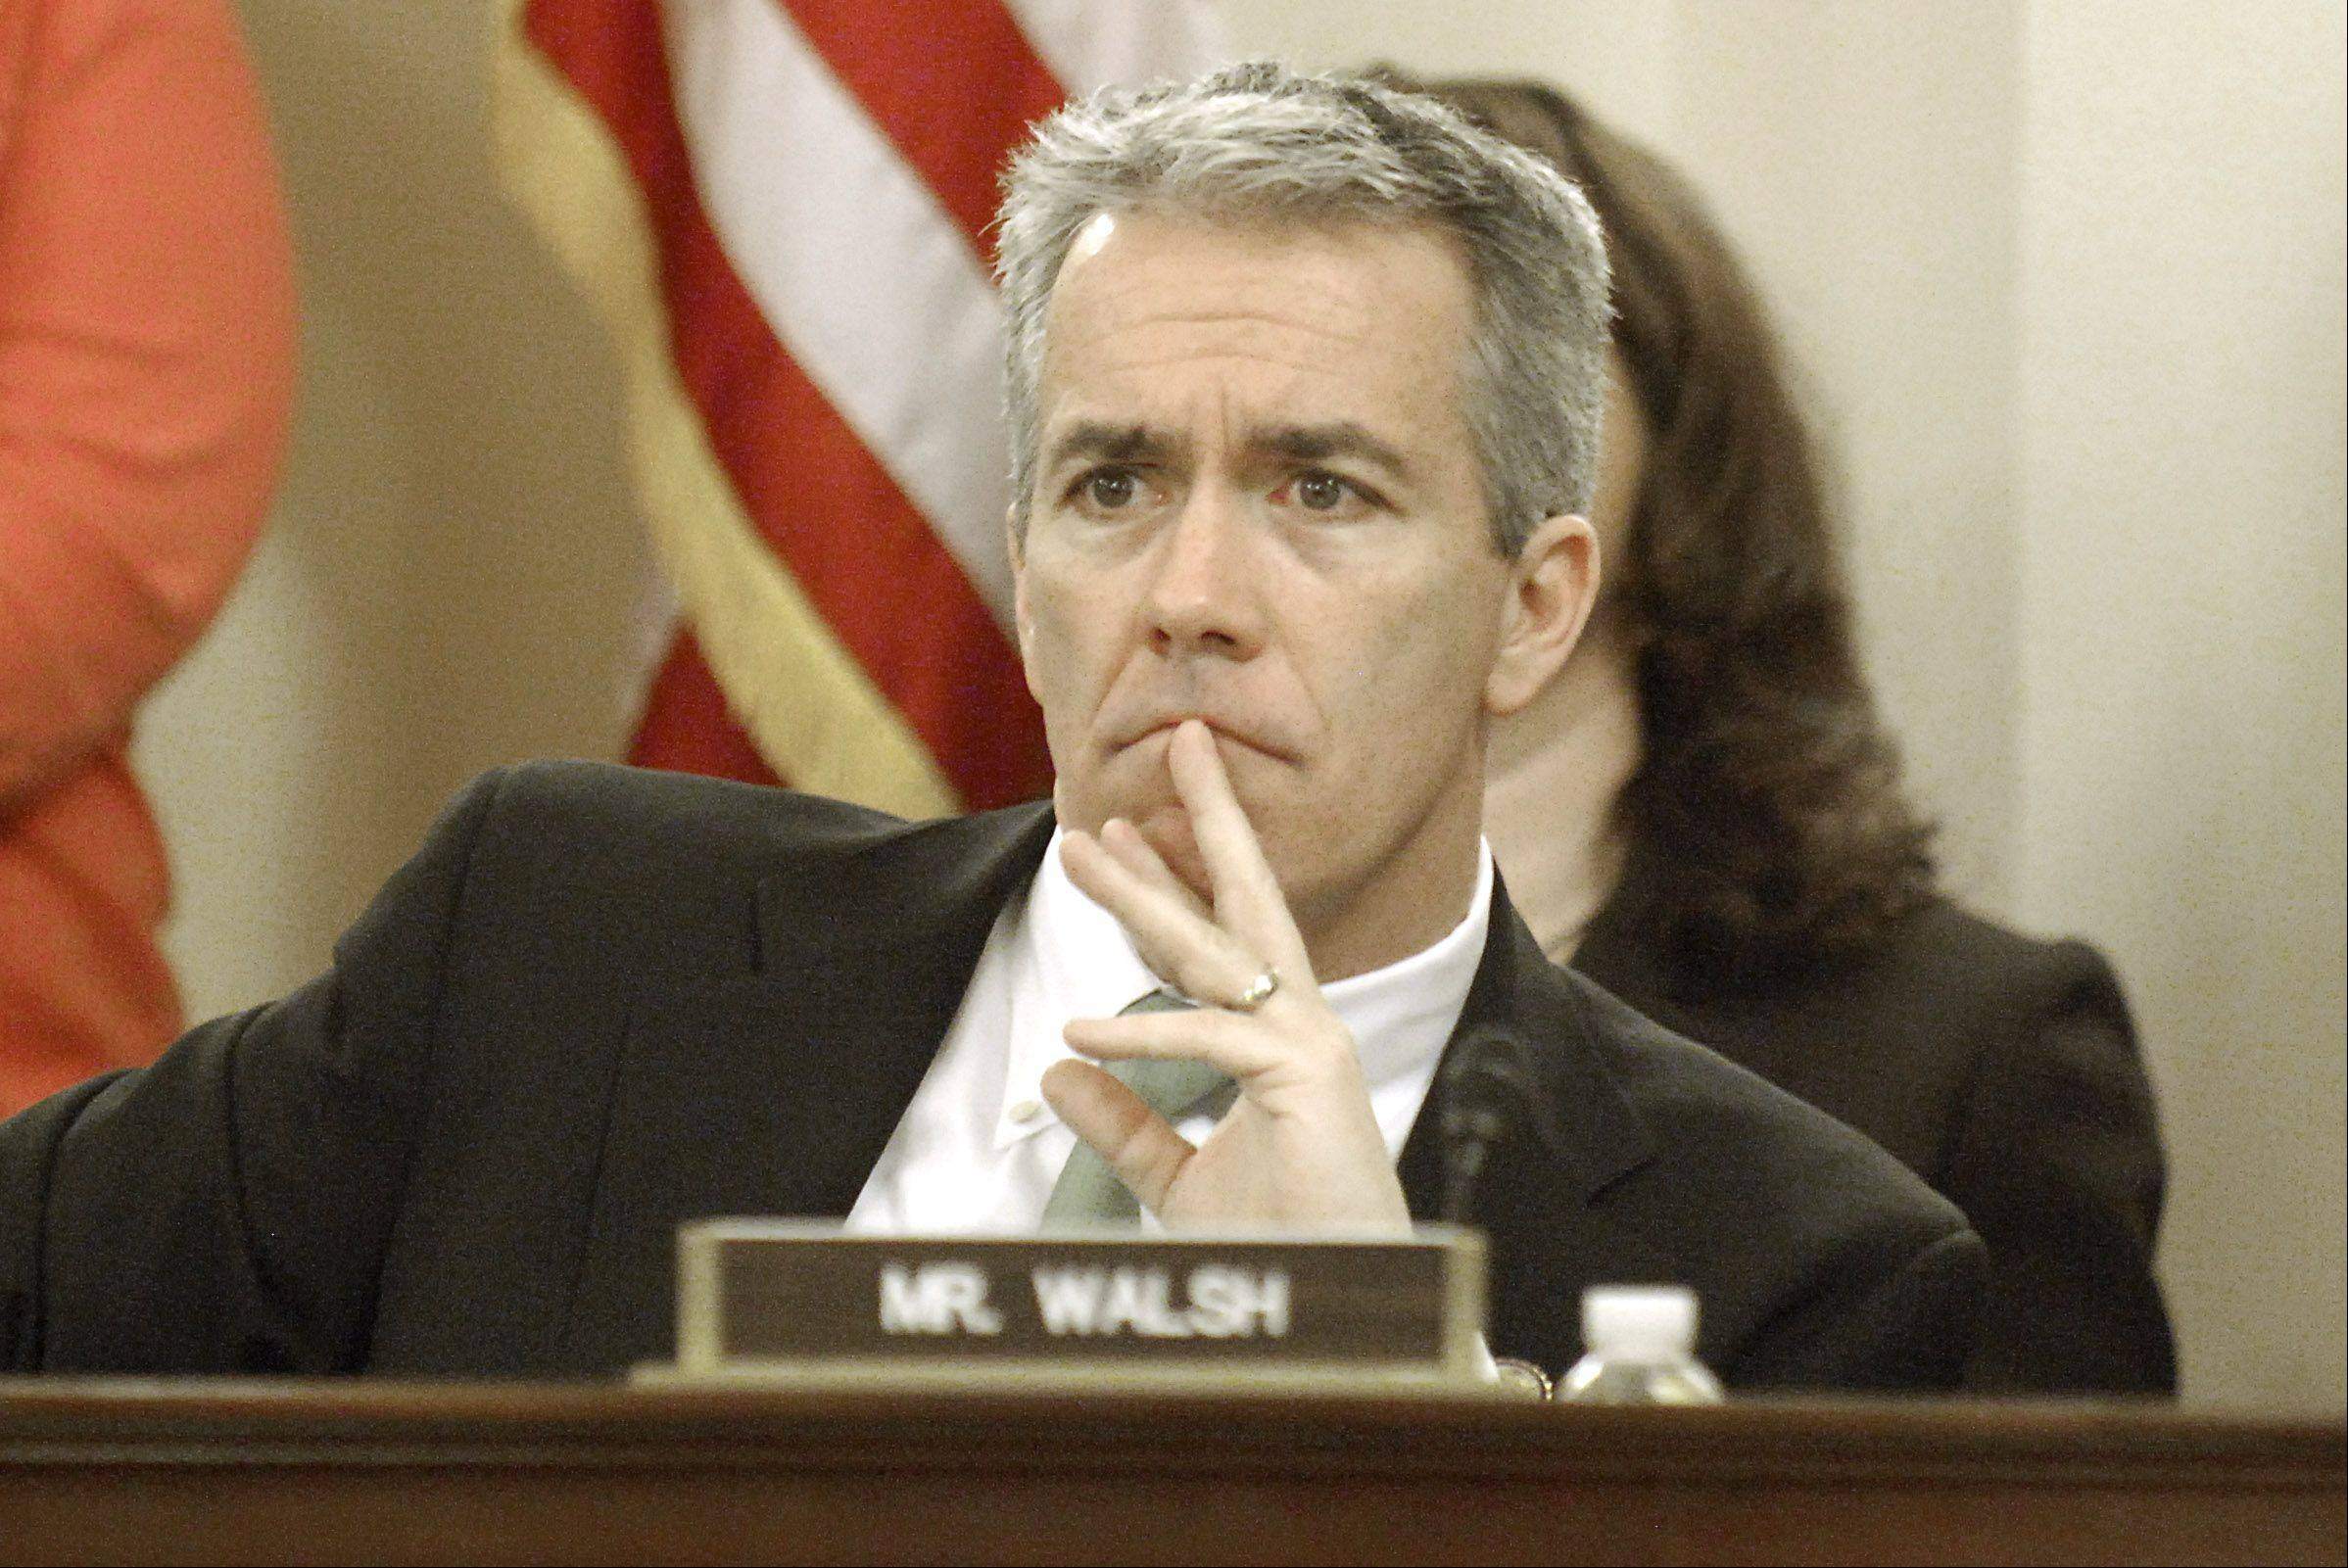 Congressman Joe Walsh may be considering running in the 8th District, not the 14th, in the March primary.